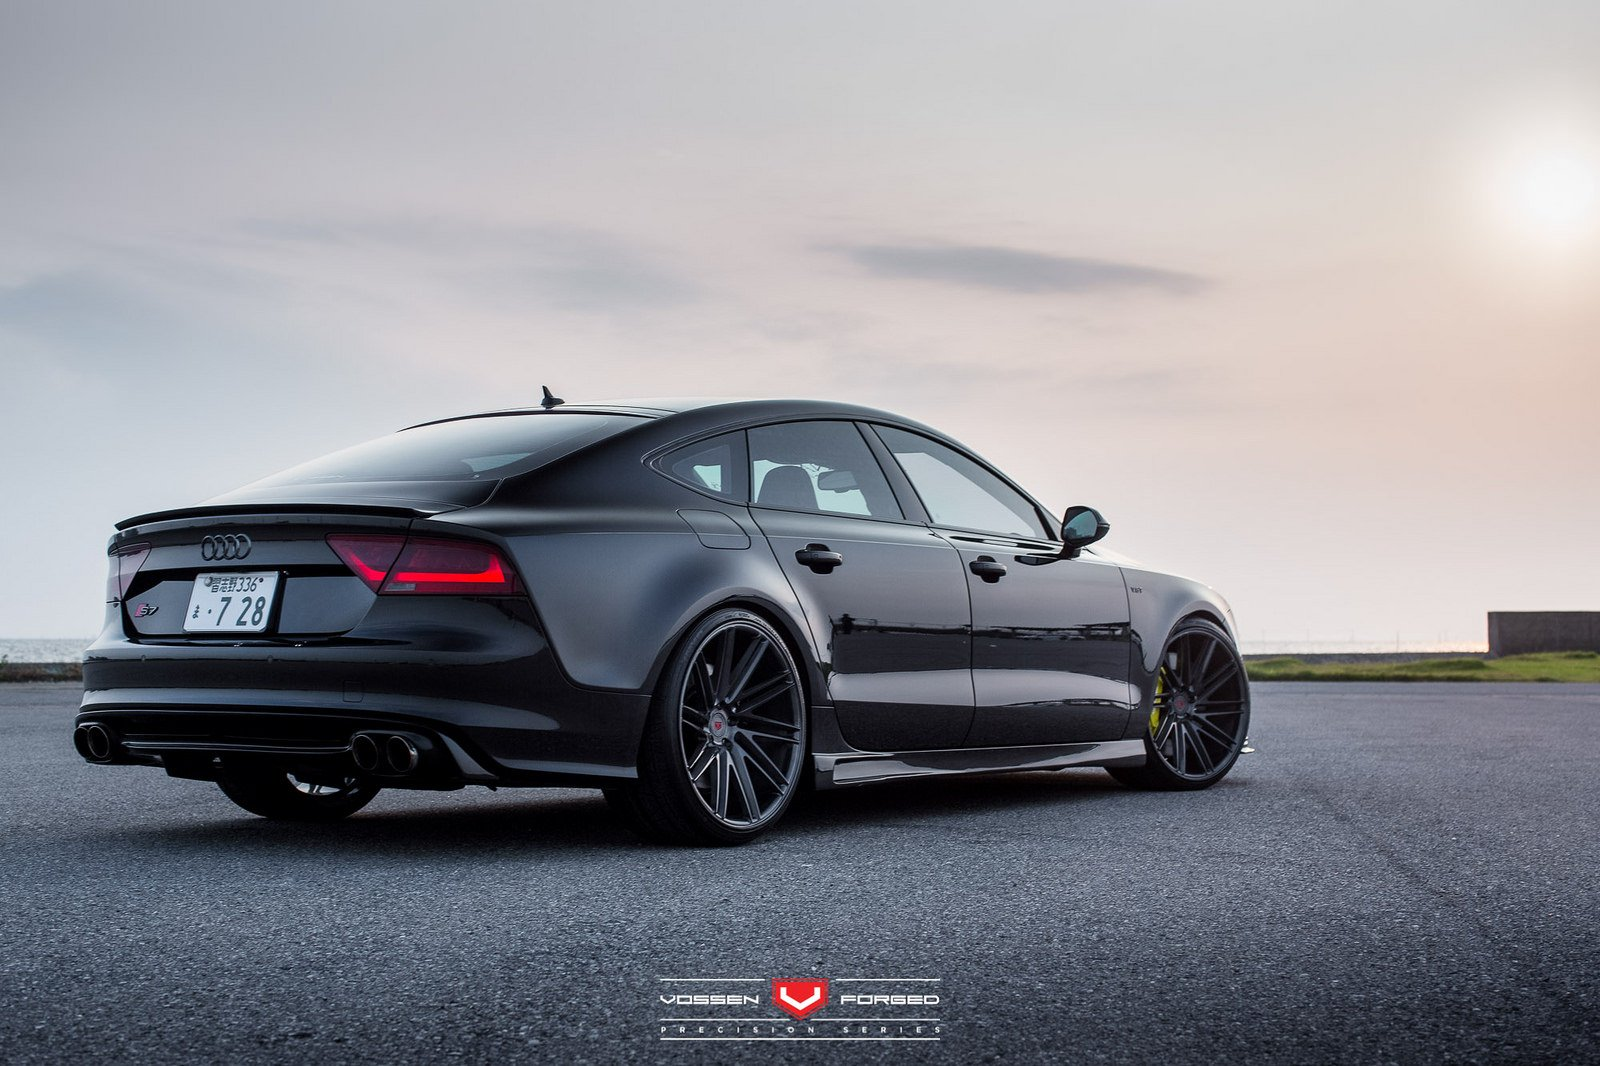 audi s7 wallpaper images galleries with a bite. Black Bedroom Furniture Sets. Home Design Ideas